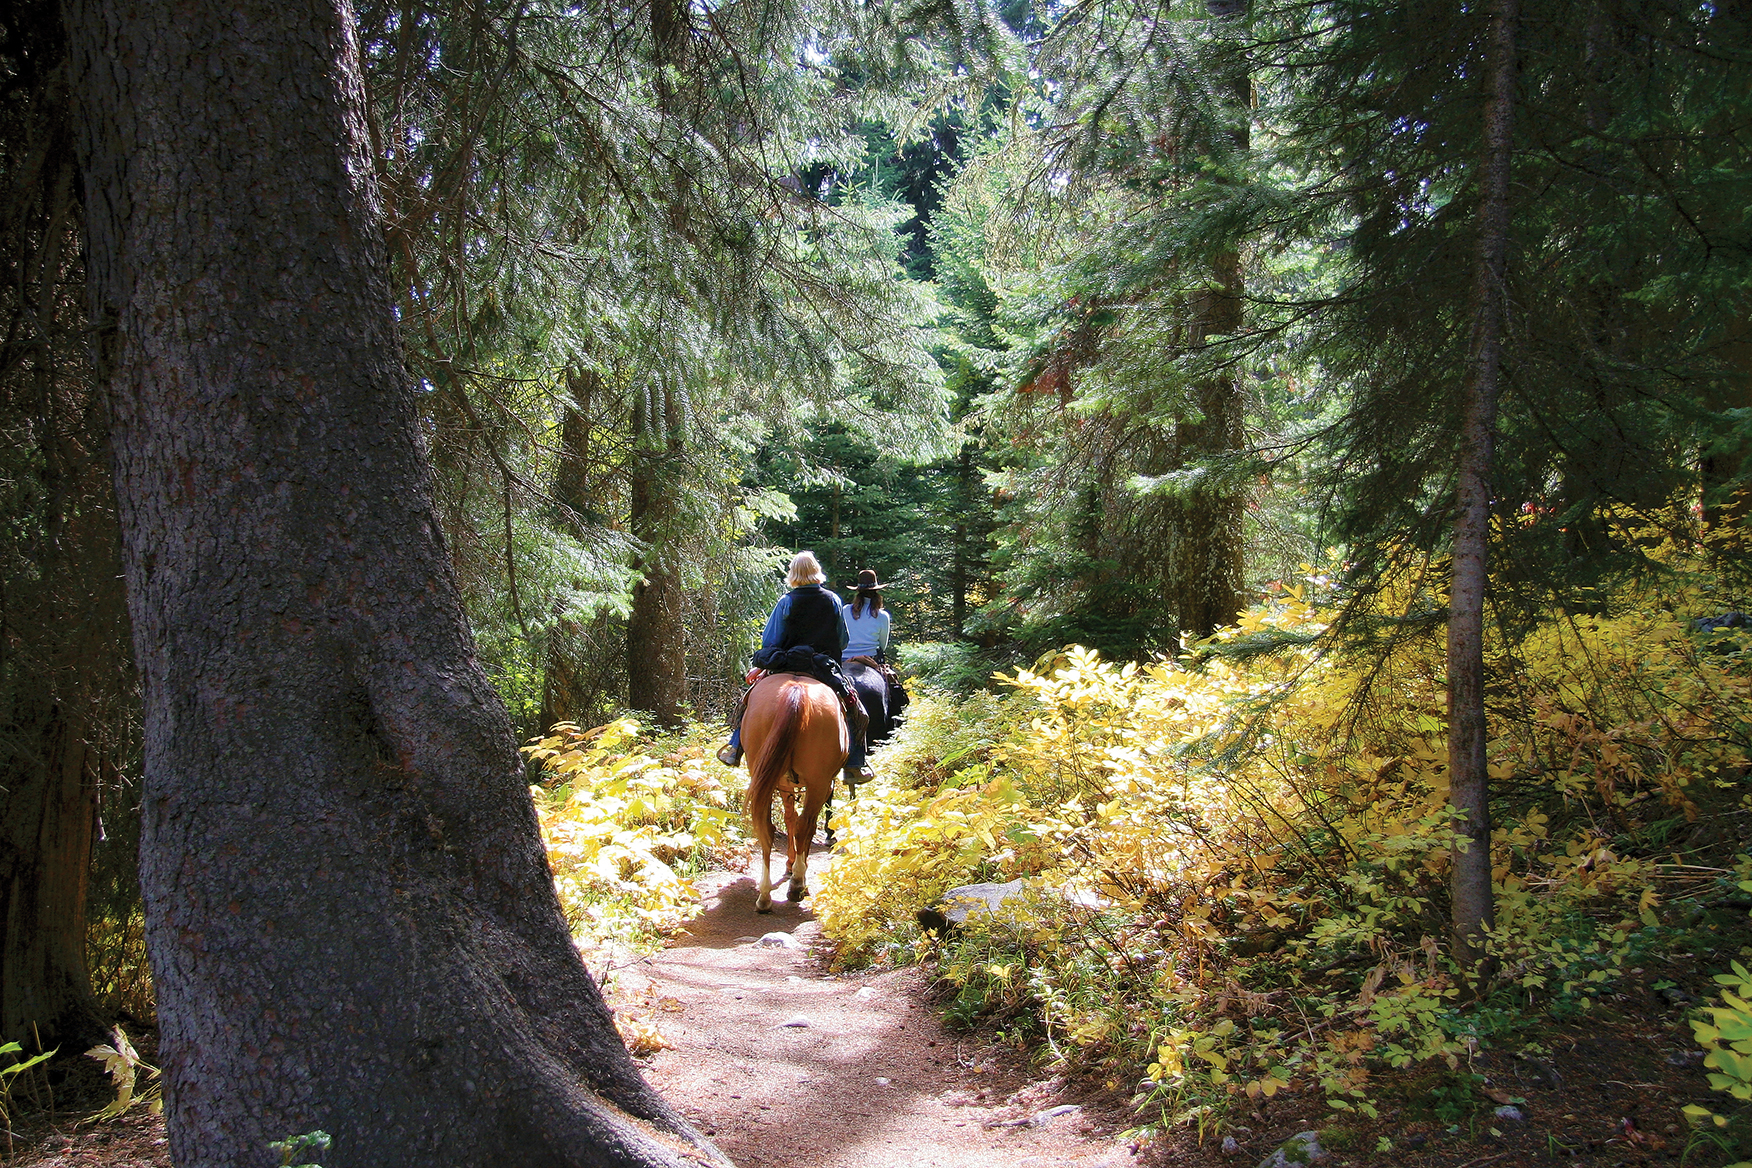 Many people connect with nature by riding horseback through the Heritage Trail. Photo courtesy Eastern Ontario Trails Alliance.